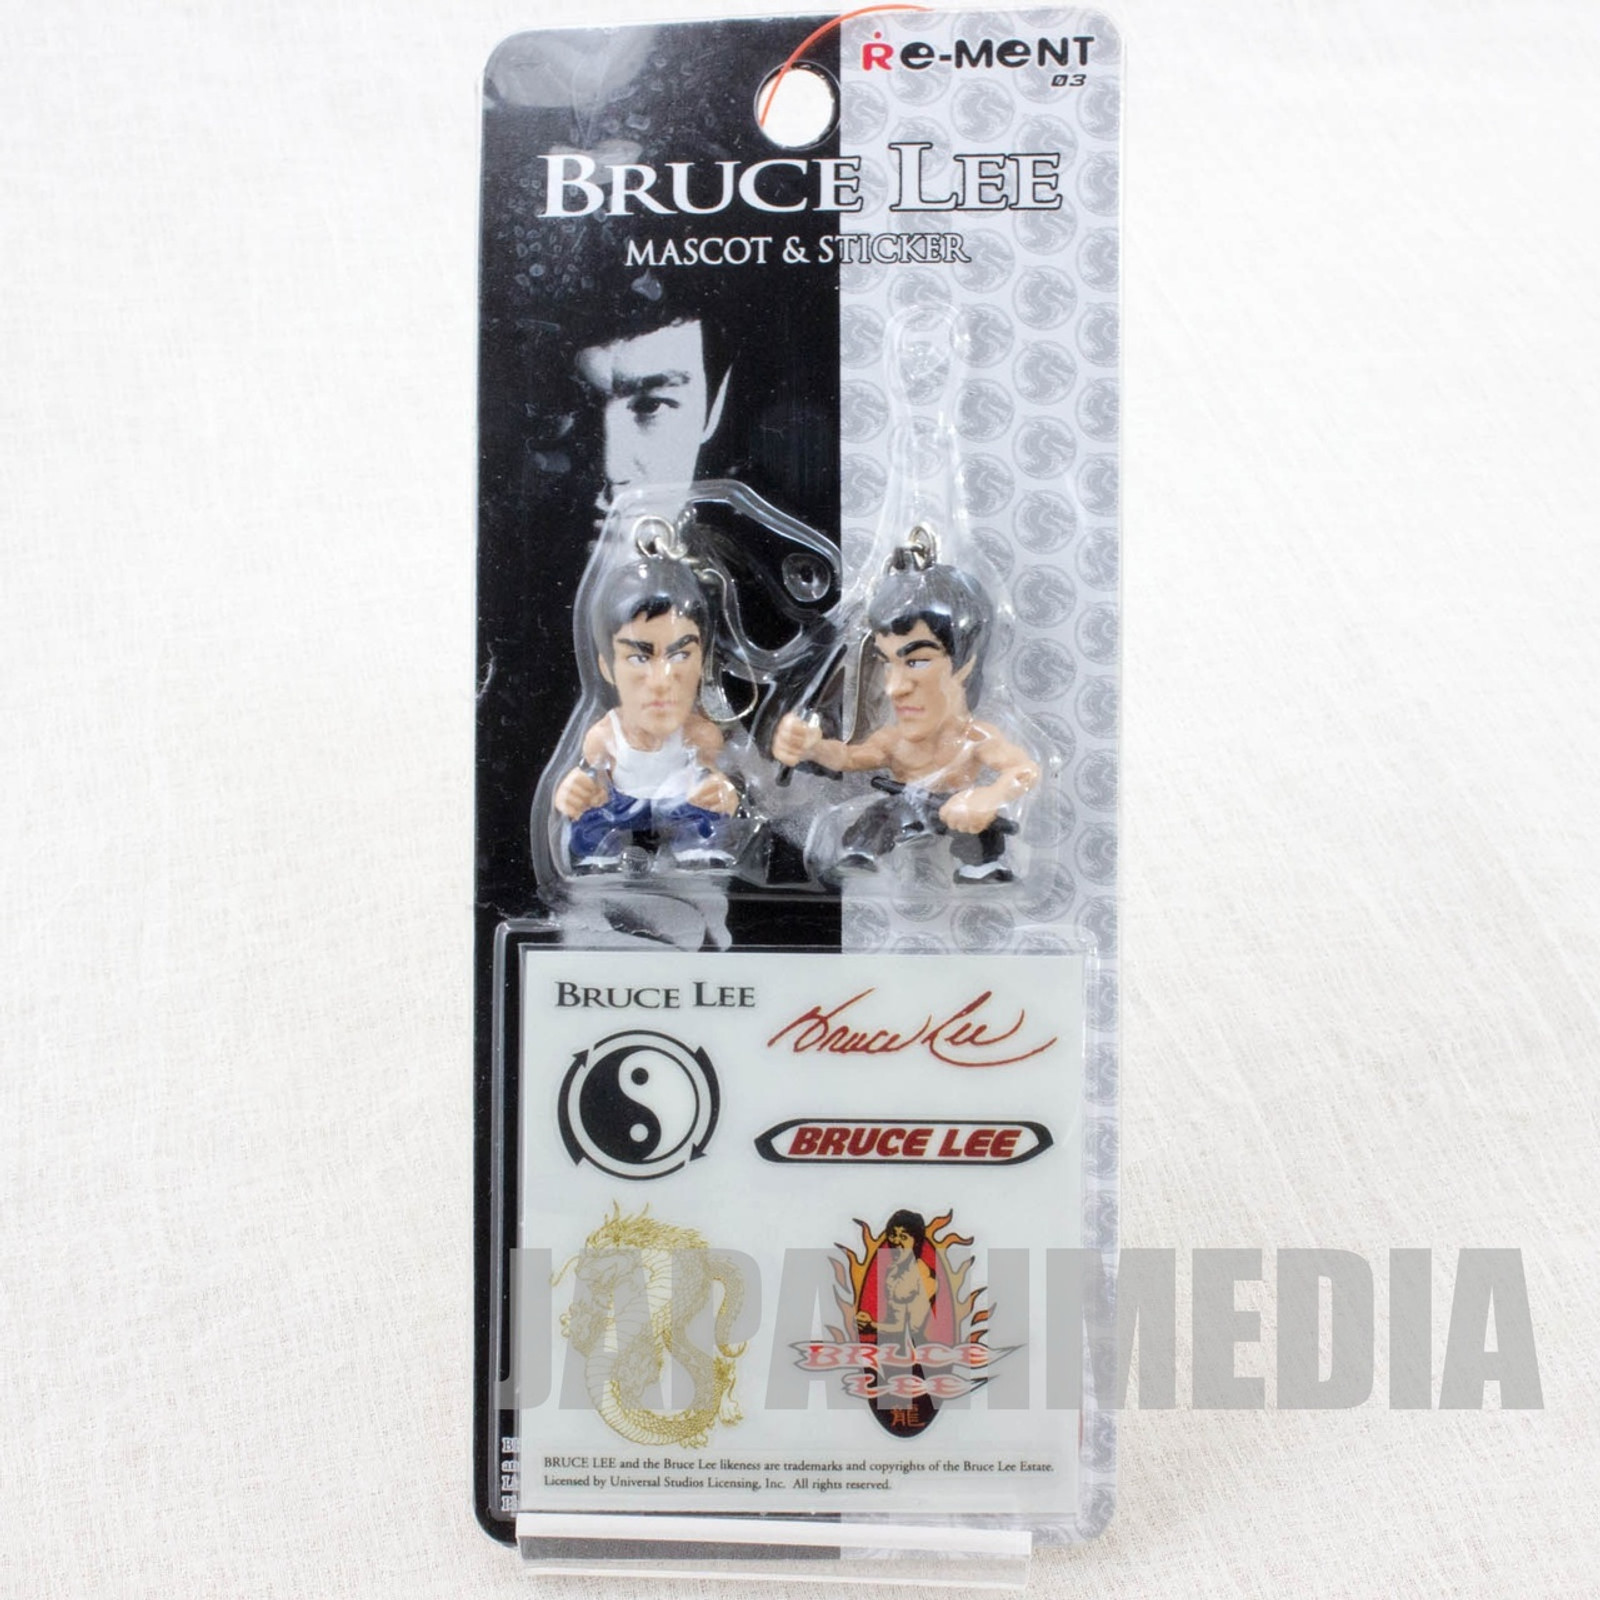 BRUCE LEE Mascot charm 2pc & Sticker Set Re-Ment JAPAN